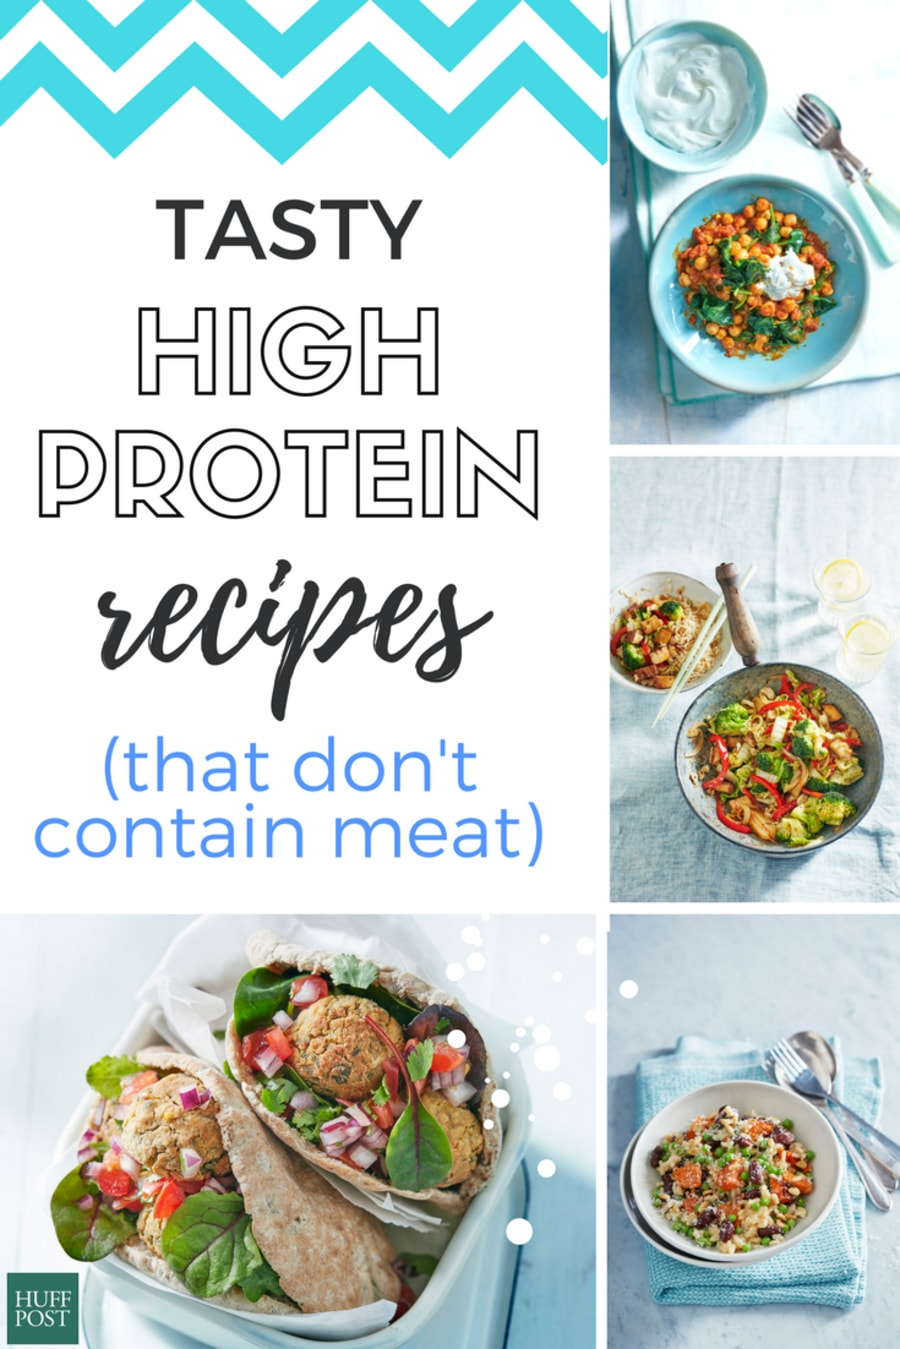 Tasty, Easy Recipes With Heaps Of Protein (But No